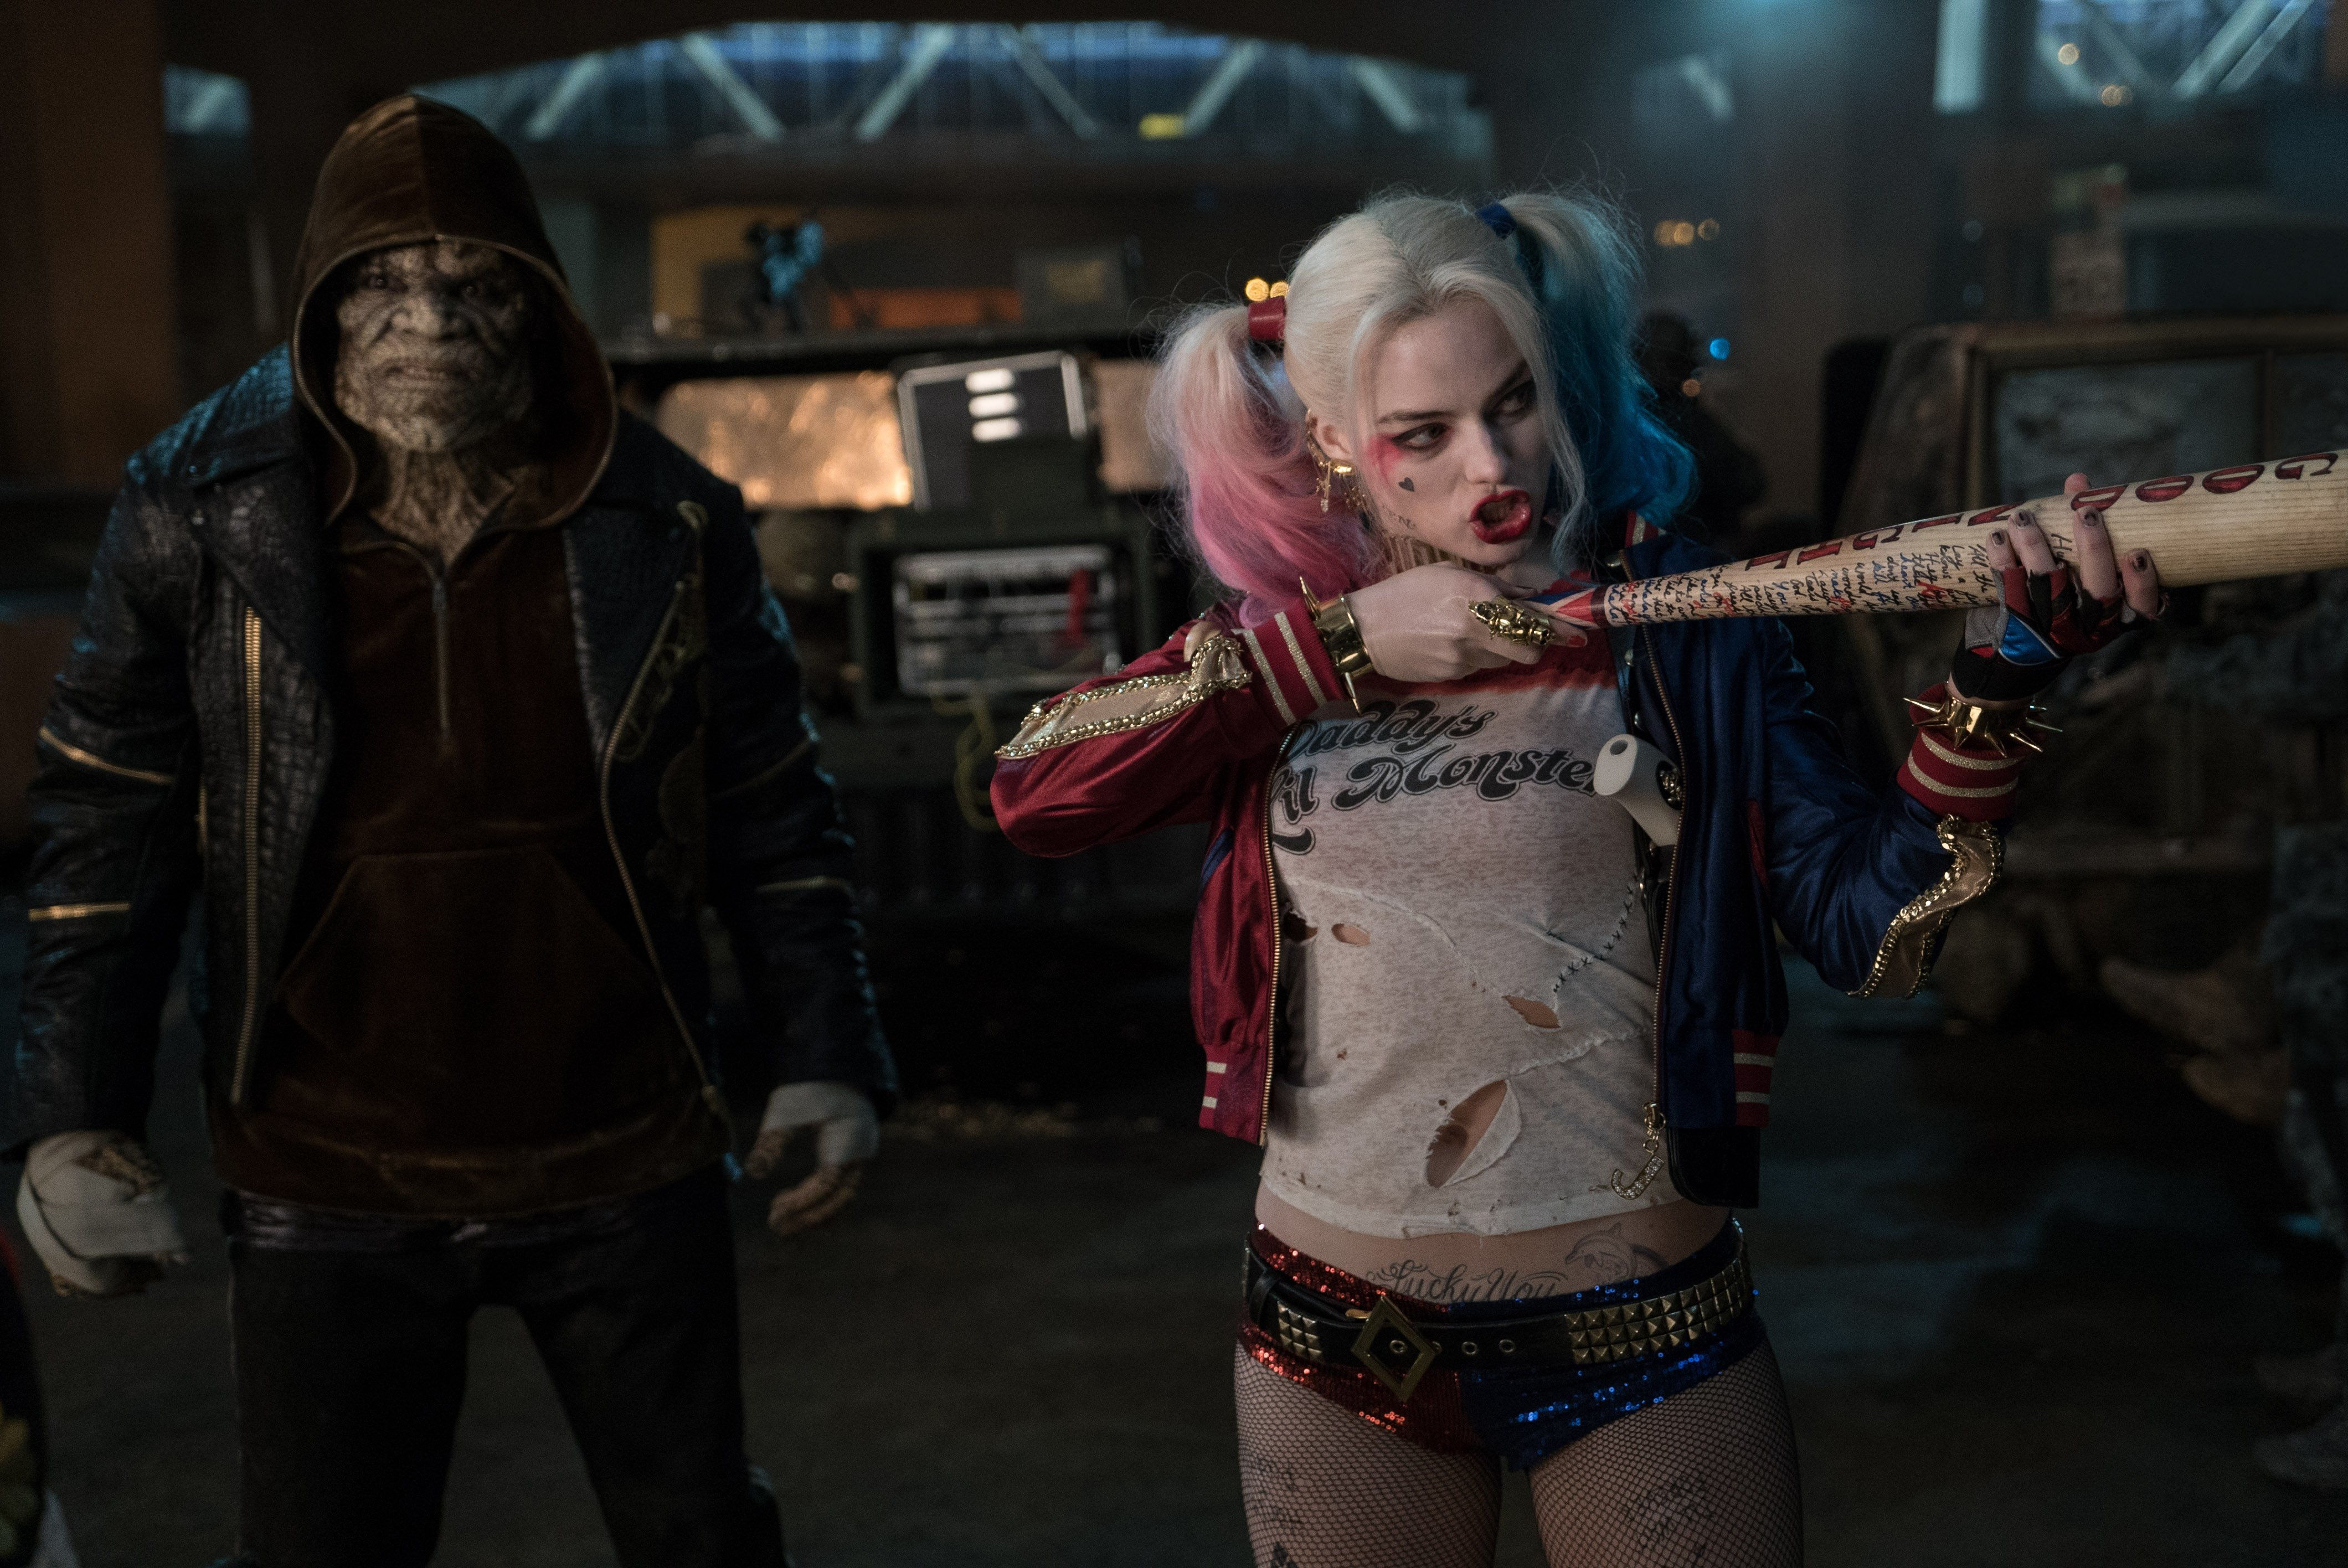 Suicide Squad Harley Quinn Image Is Cool Wallpapers